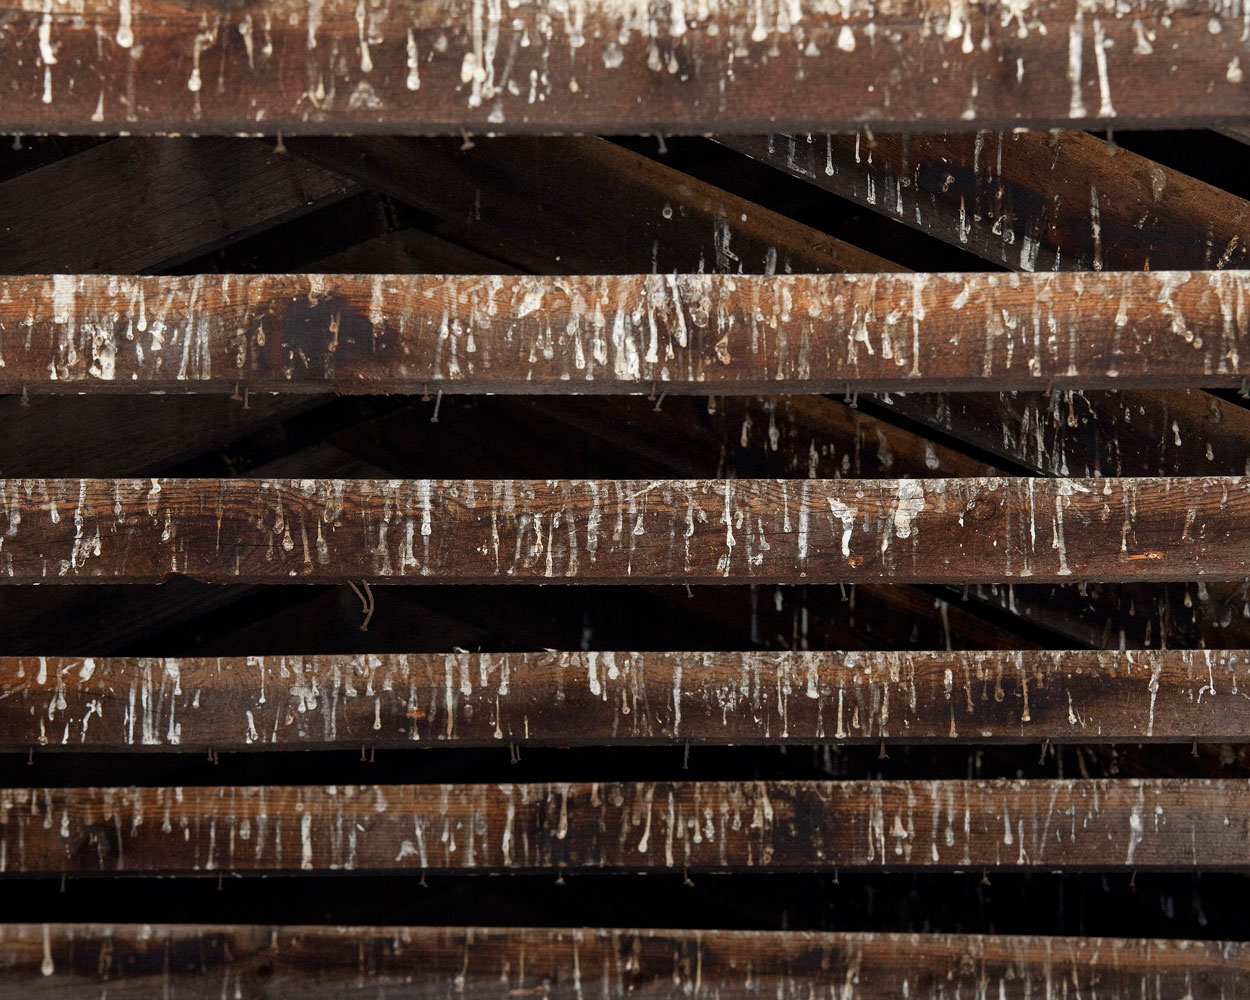 """Title: 5099A-19617 (rafters), Archival pigment print, 20x16"""", 2010"""